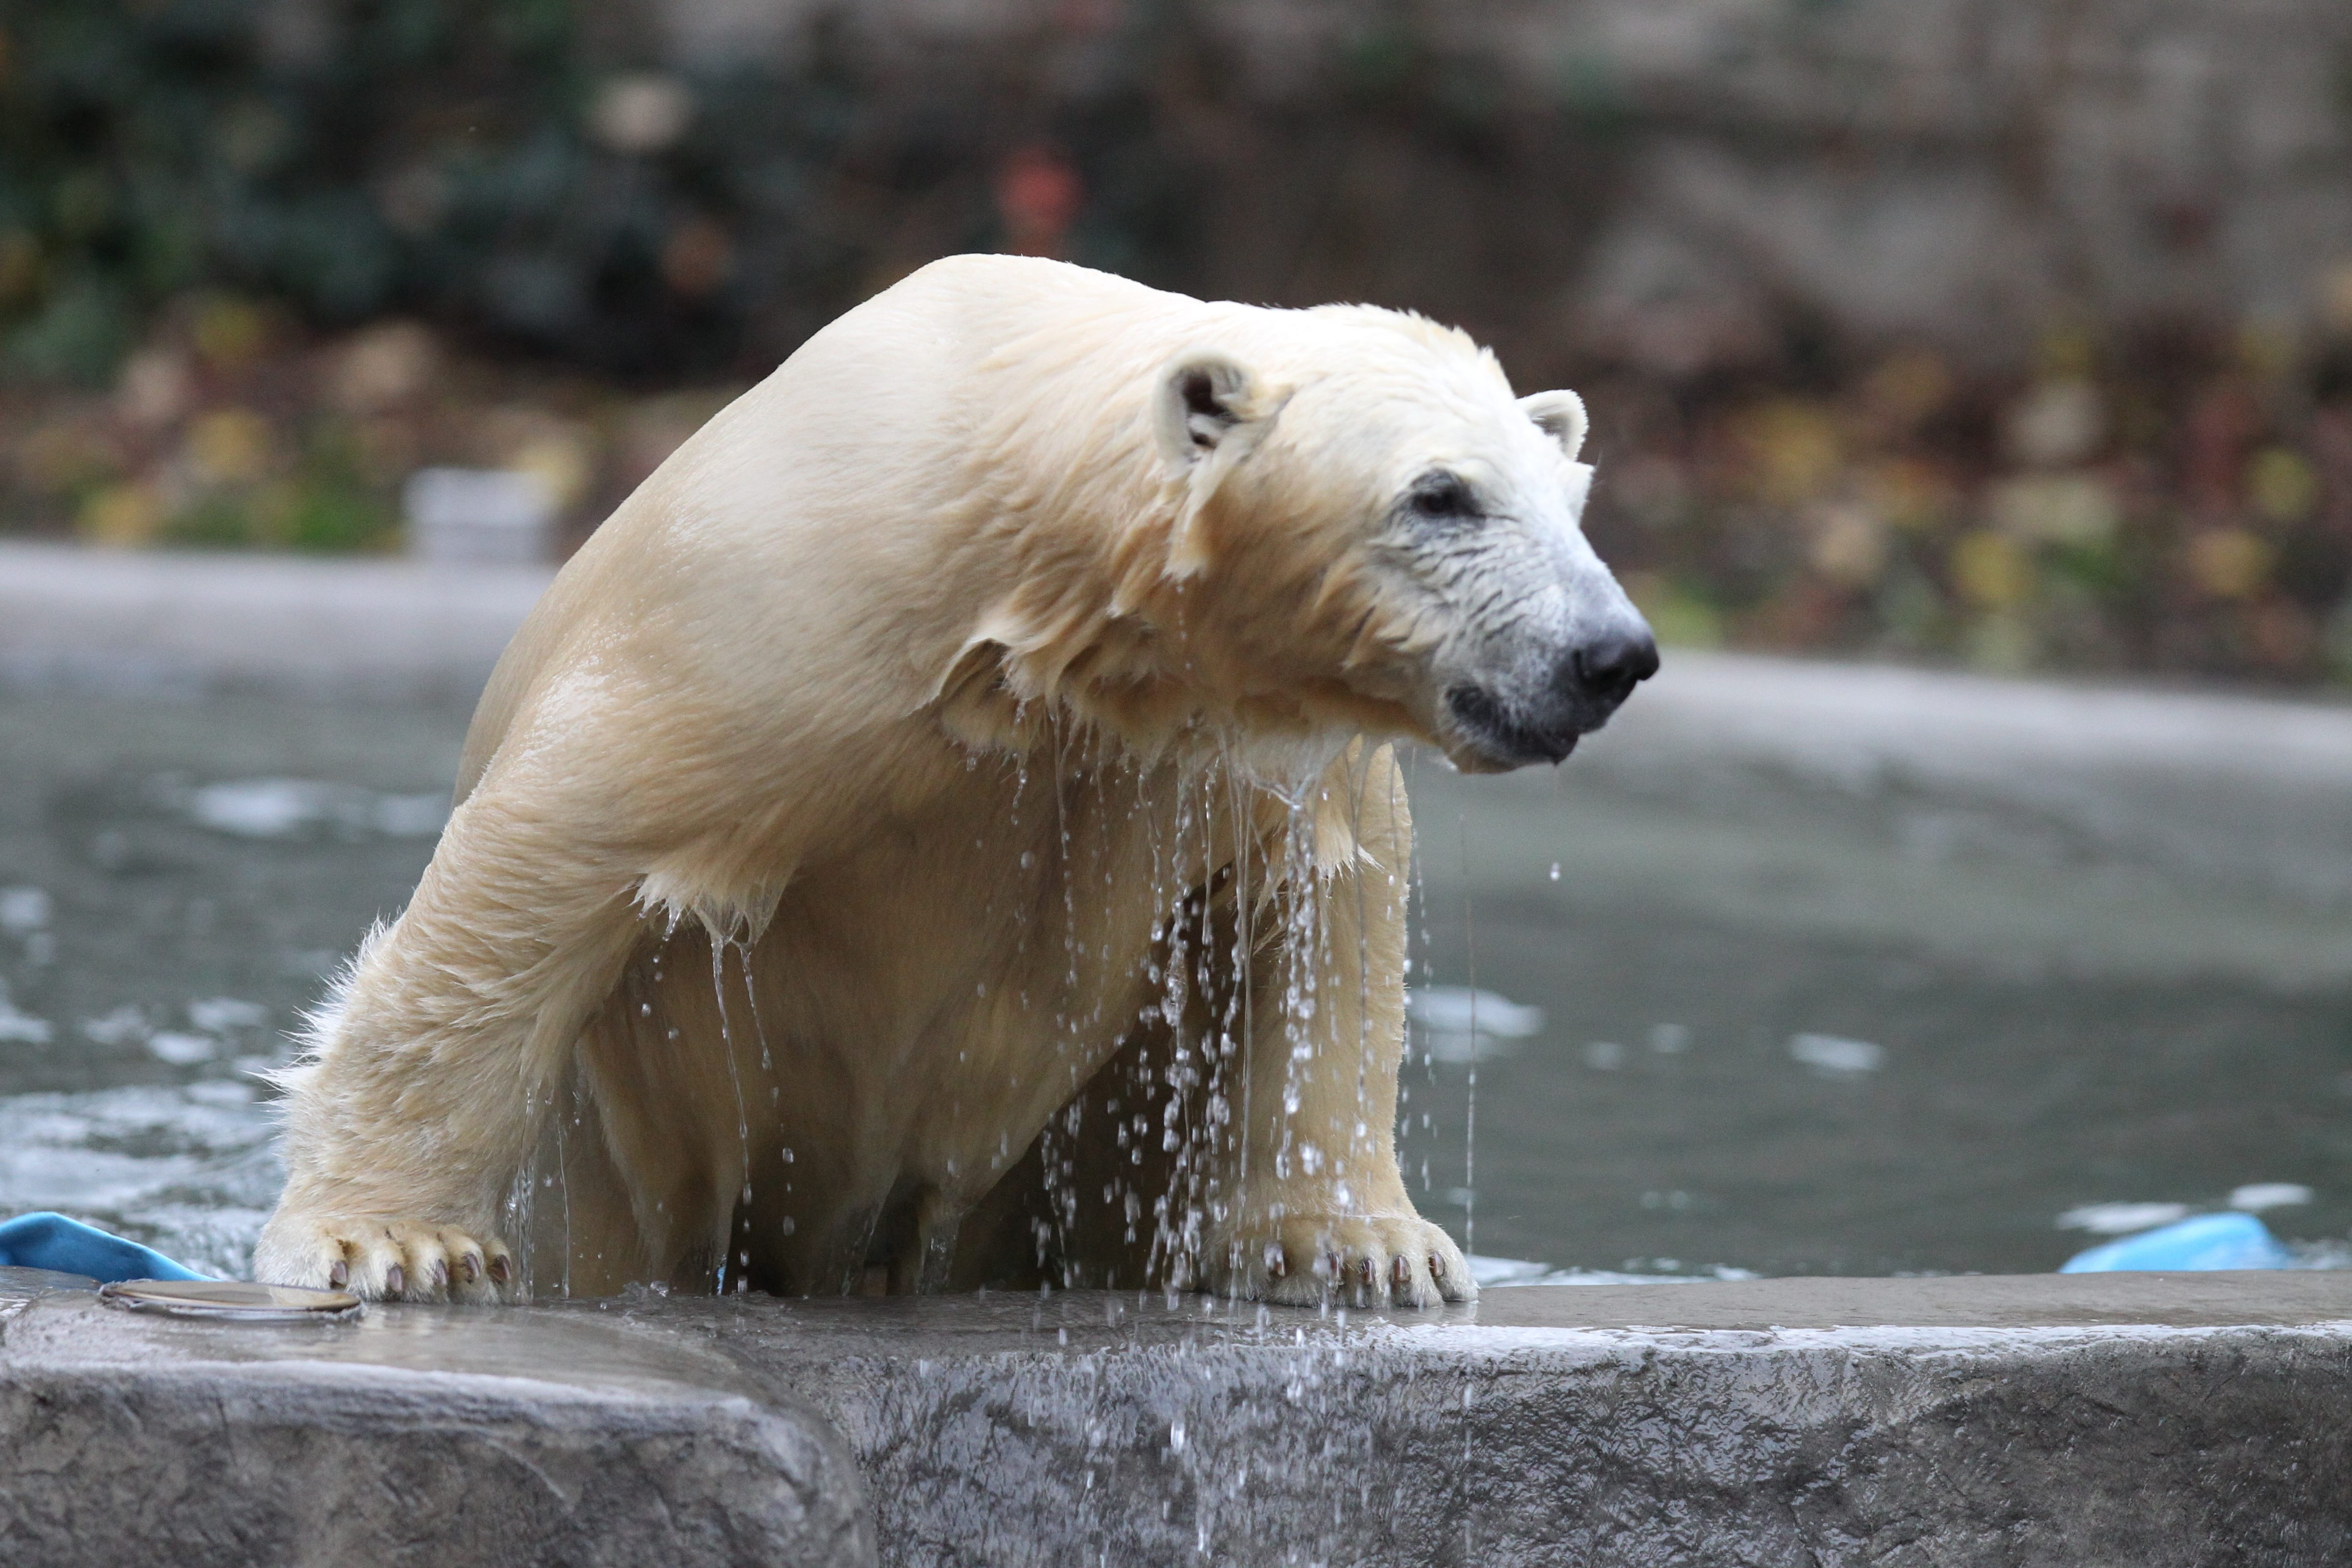 Kali, the orphaned polar bear, will stay at the Buffalo Zoo, at least through 2015, Sen. Charles E. Schumer said.